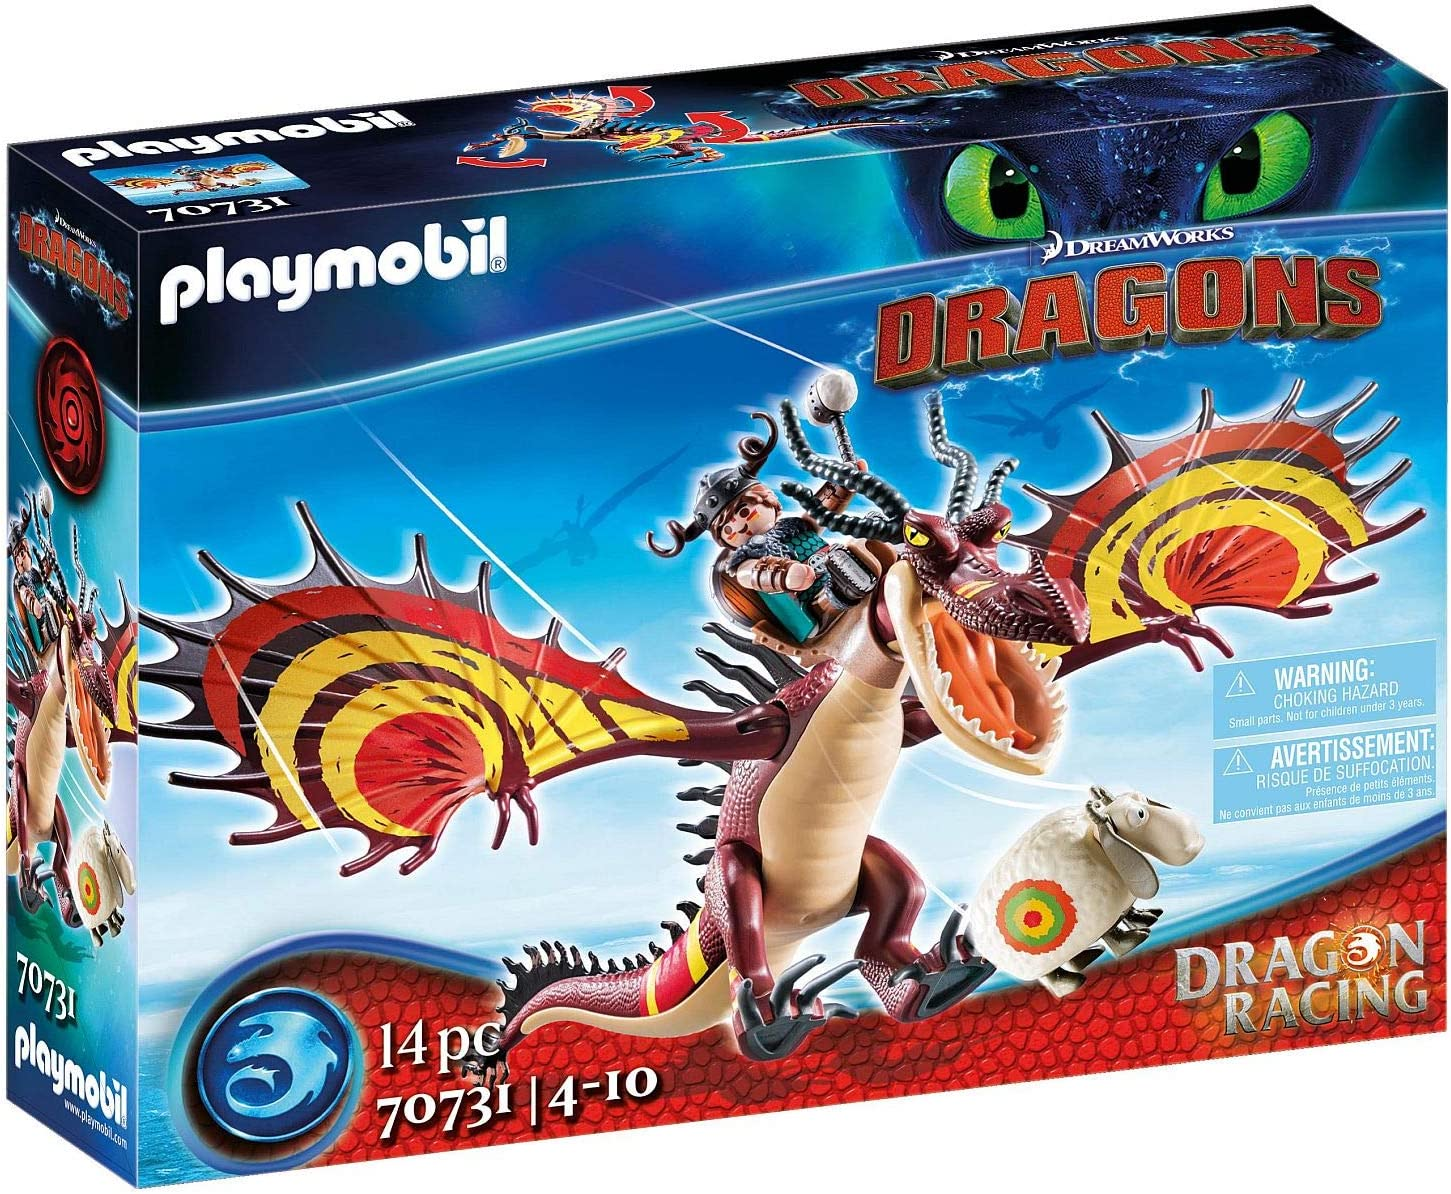 Playmobil Dragon Racing: Hookfang Nippon regular agency Recommendation Snotlout and